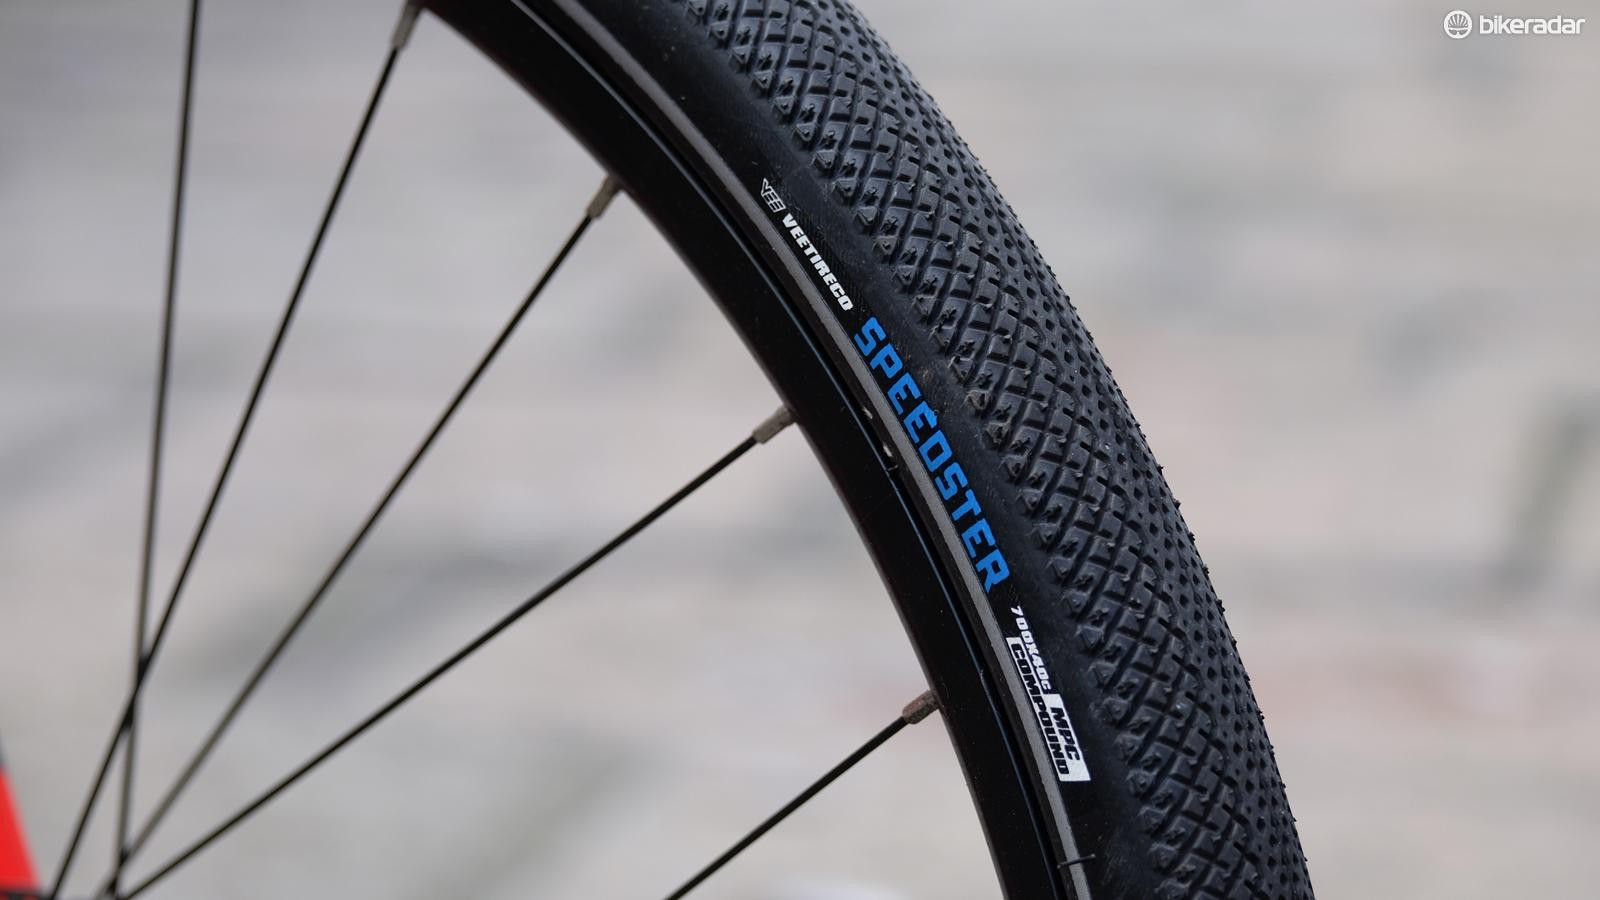 The tyres roll fast and add comfort